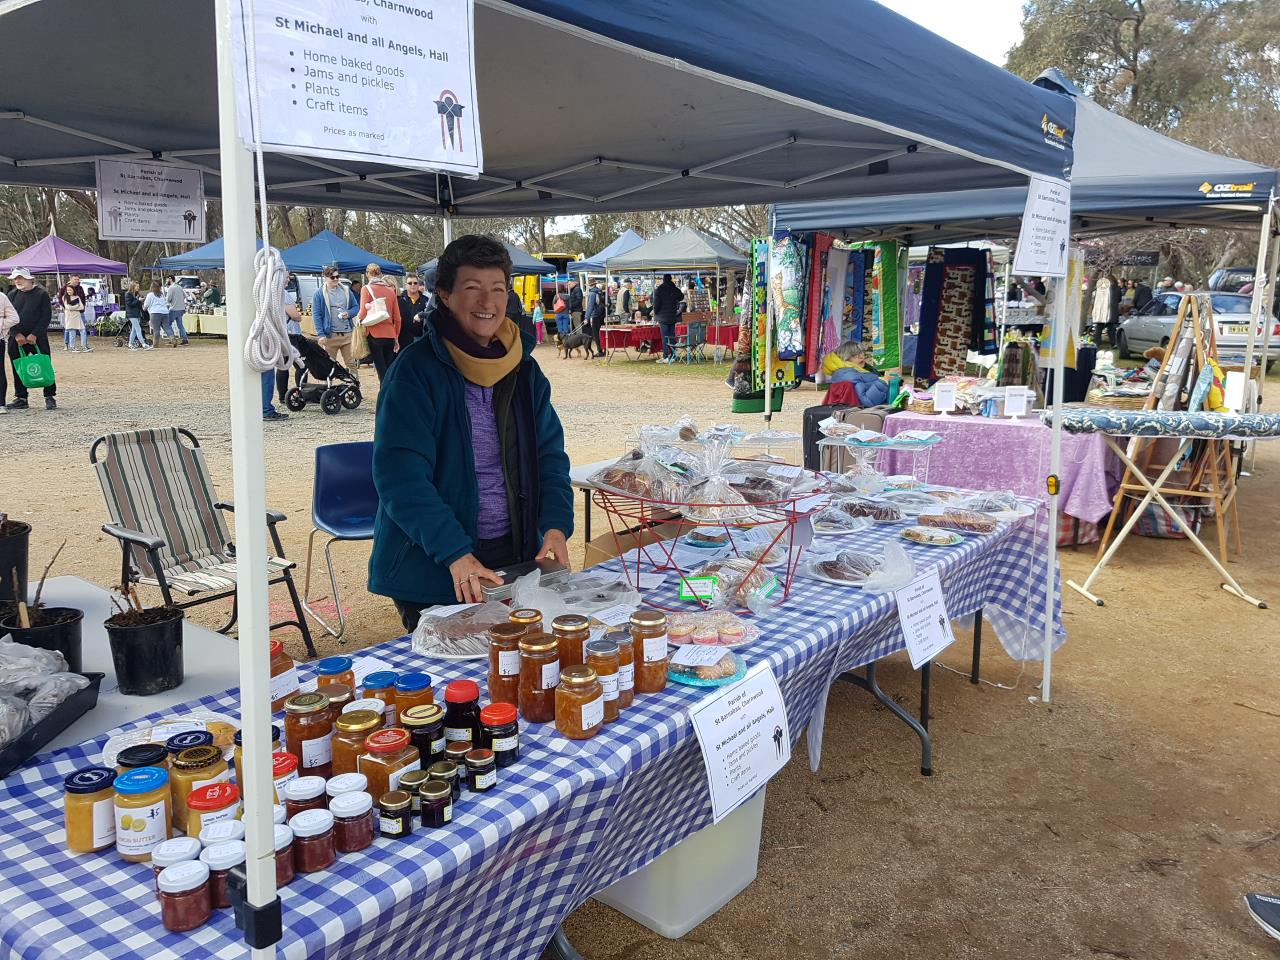 parish cakes stall at hartley hall markets 2 September 2018